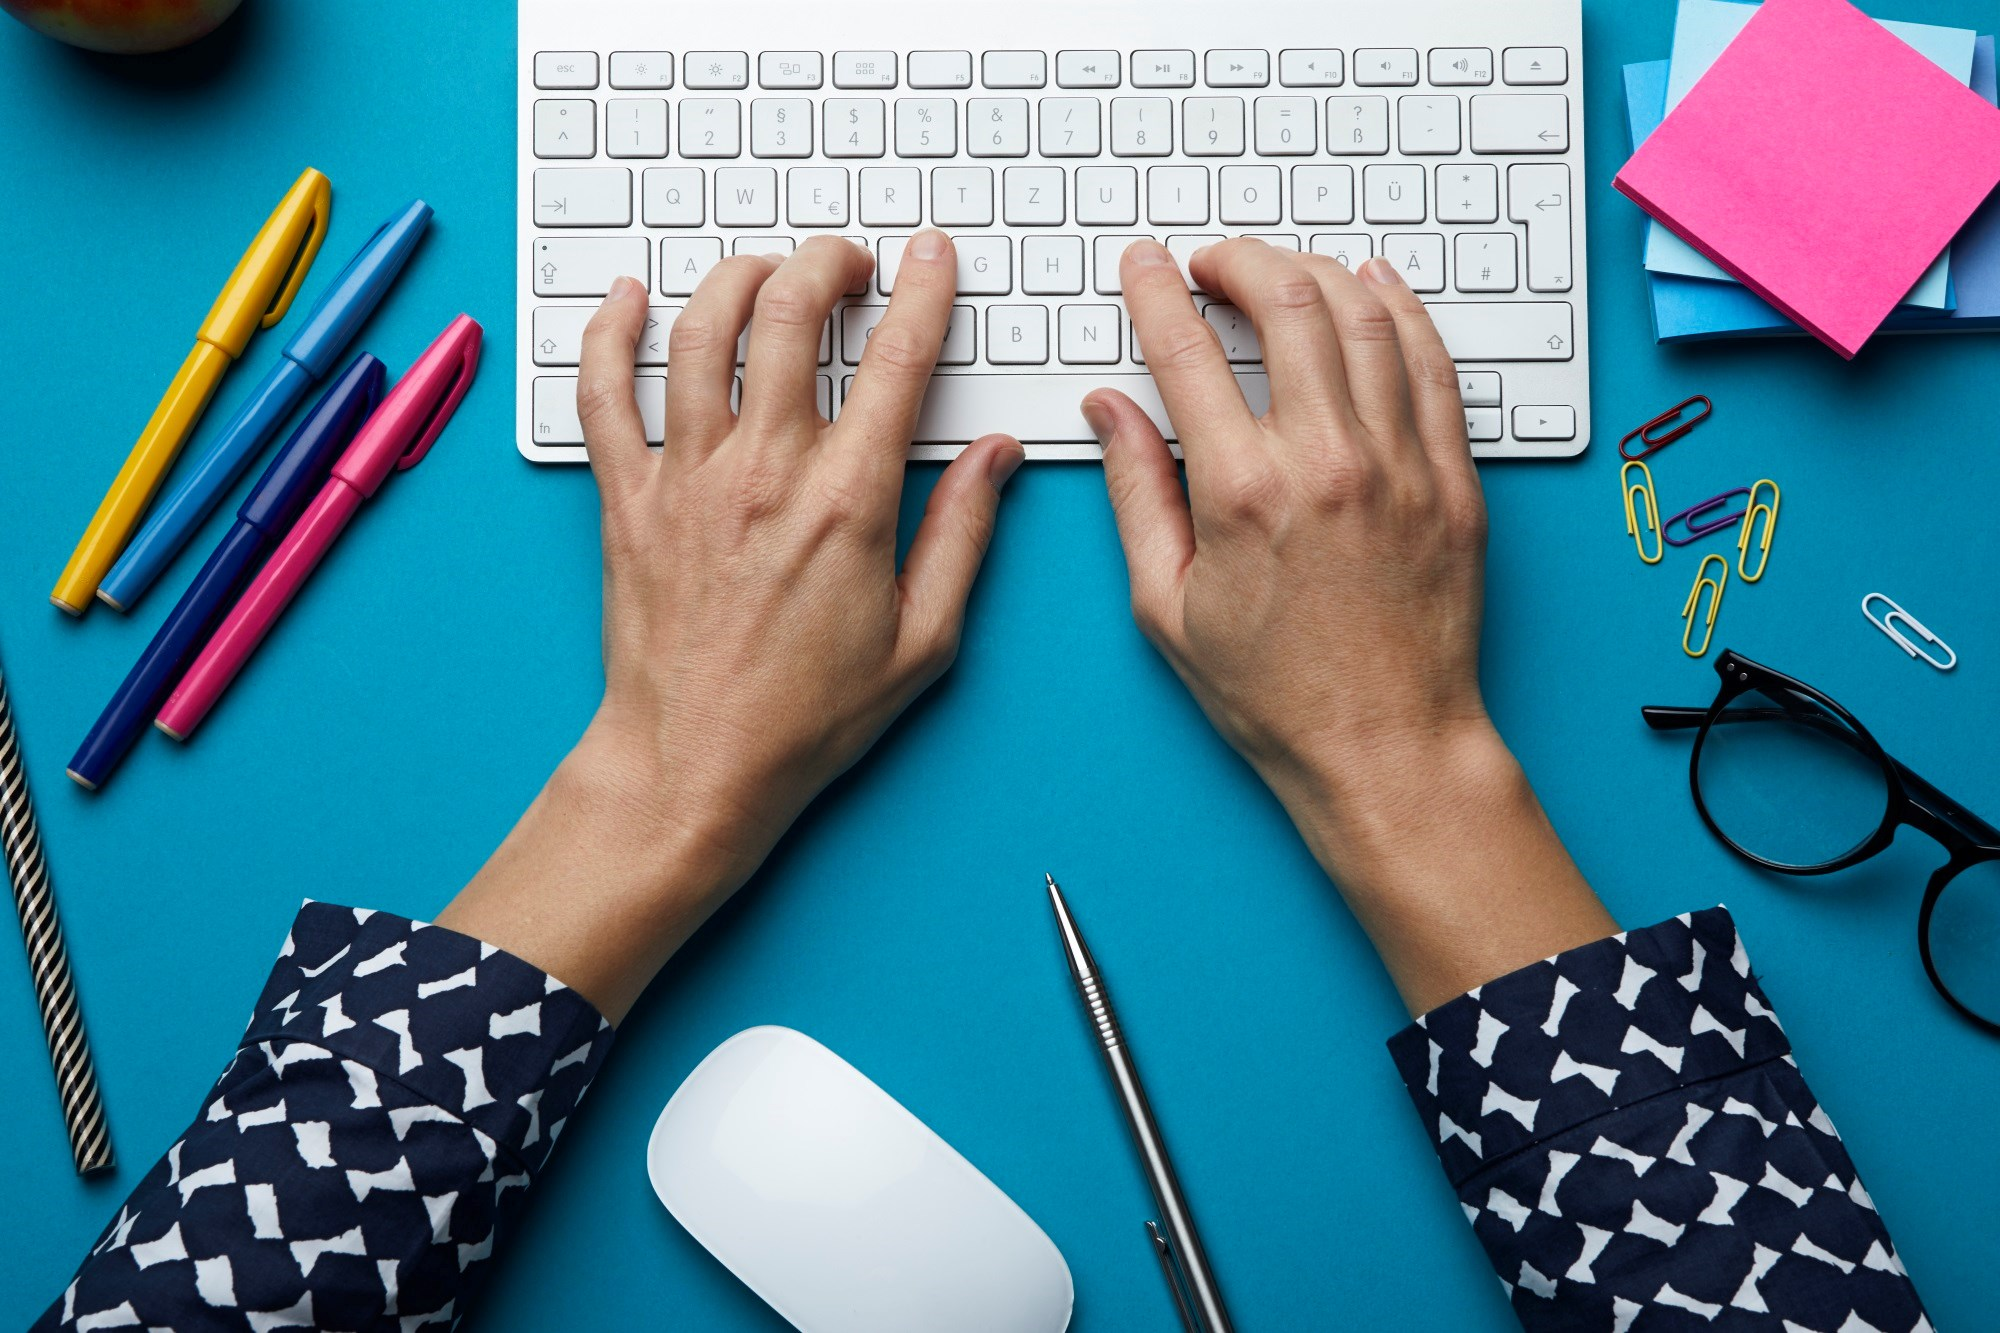 So You Want to Be a Physician-Blogger: What It's Really Like to Write About Medicine Online